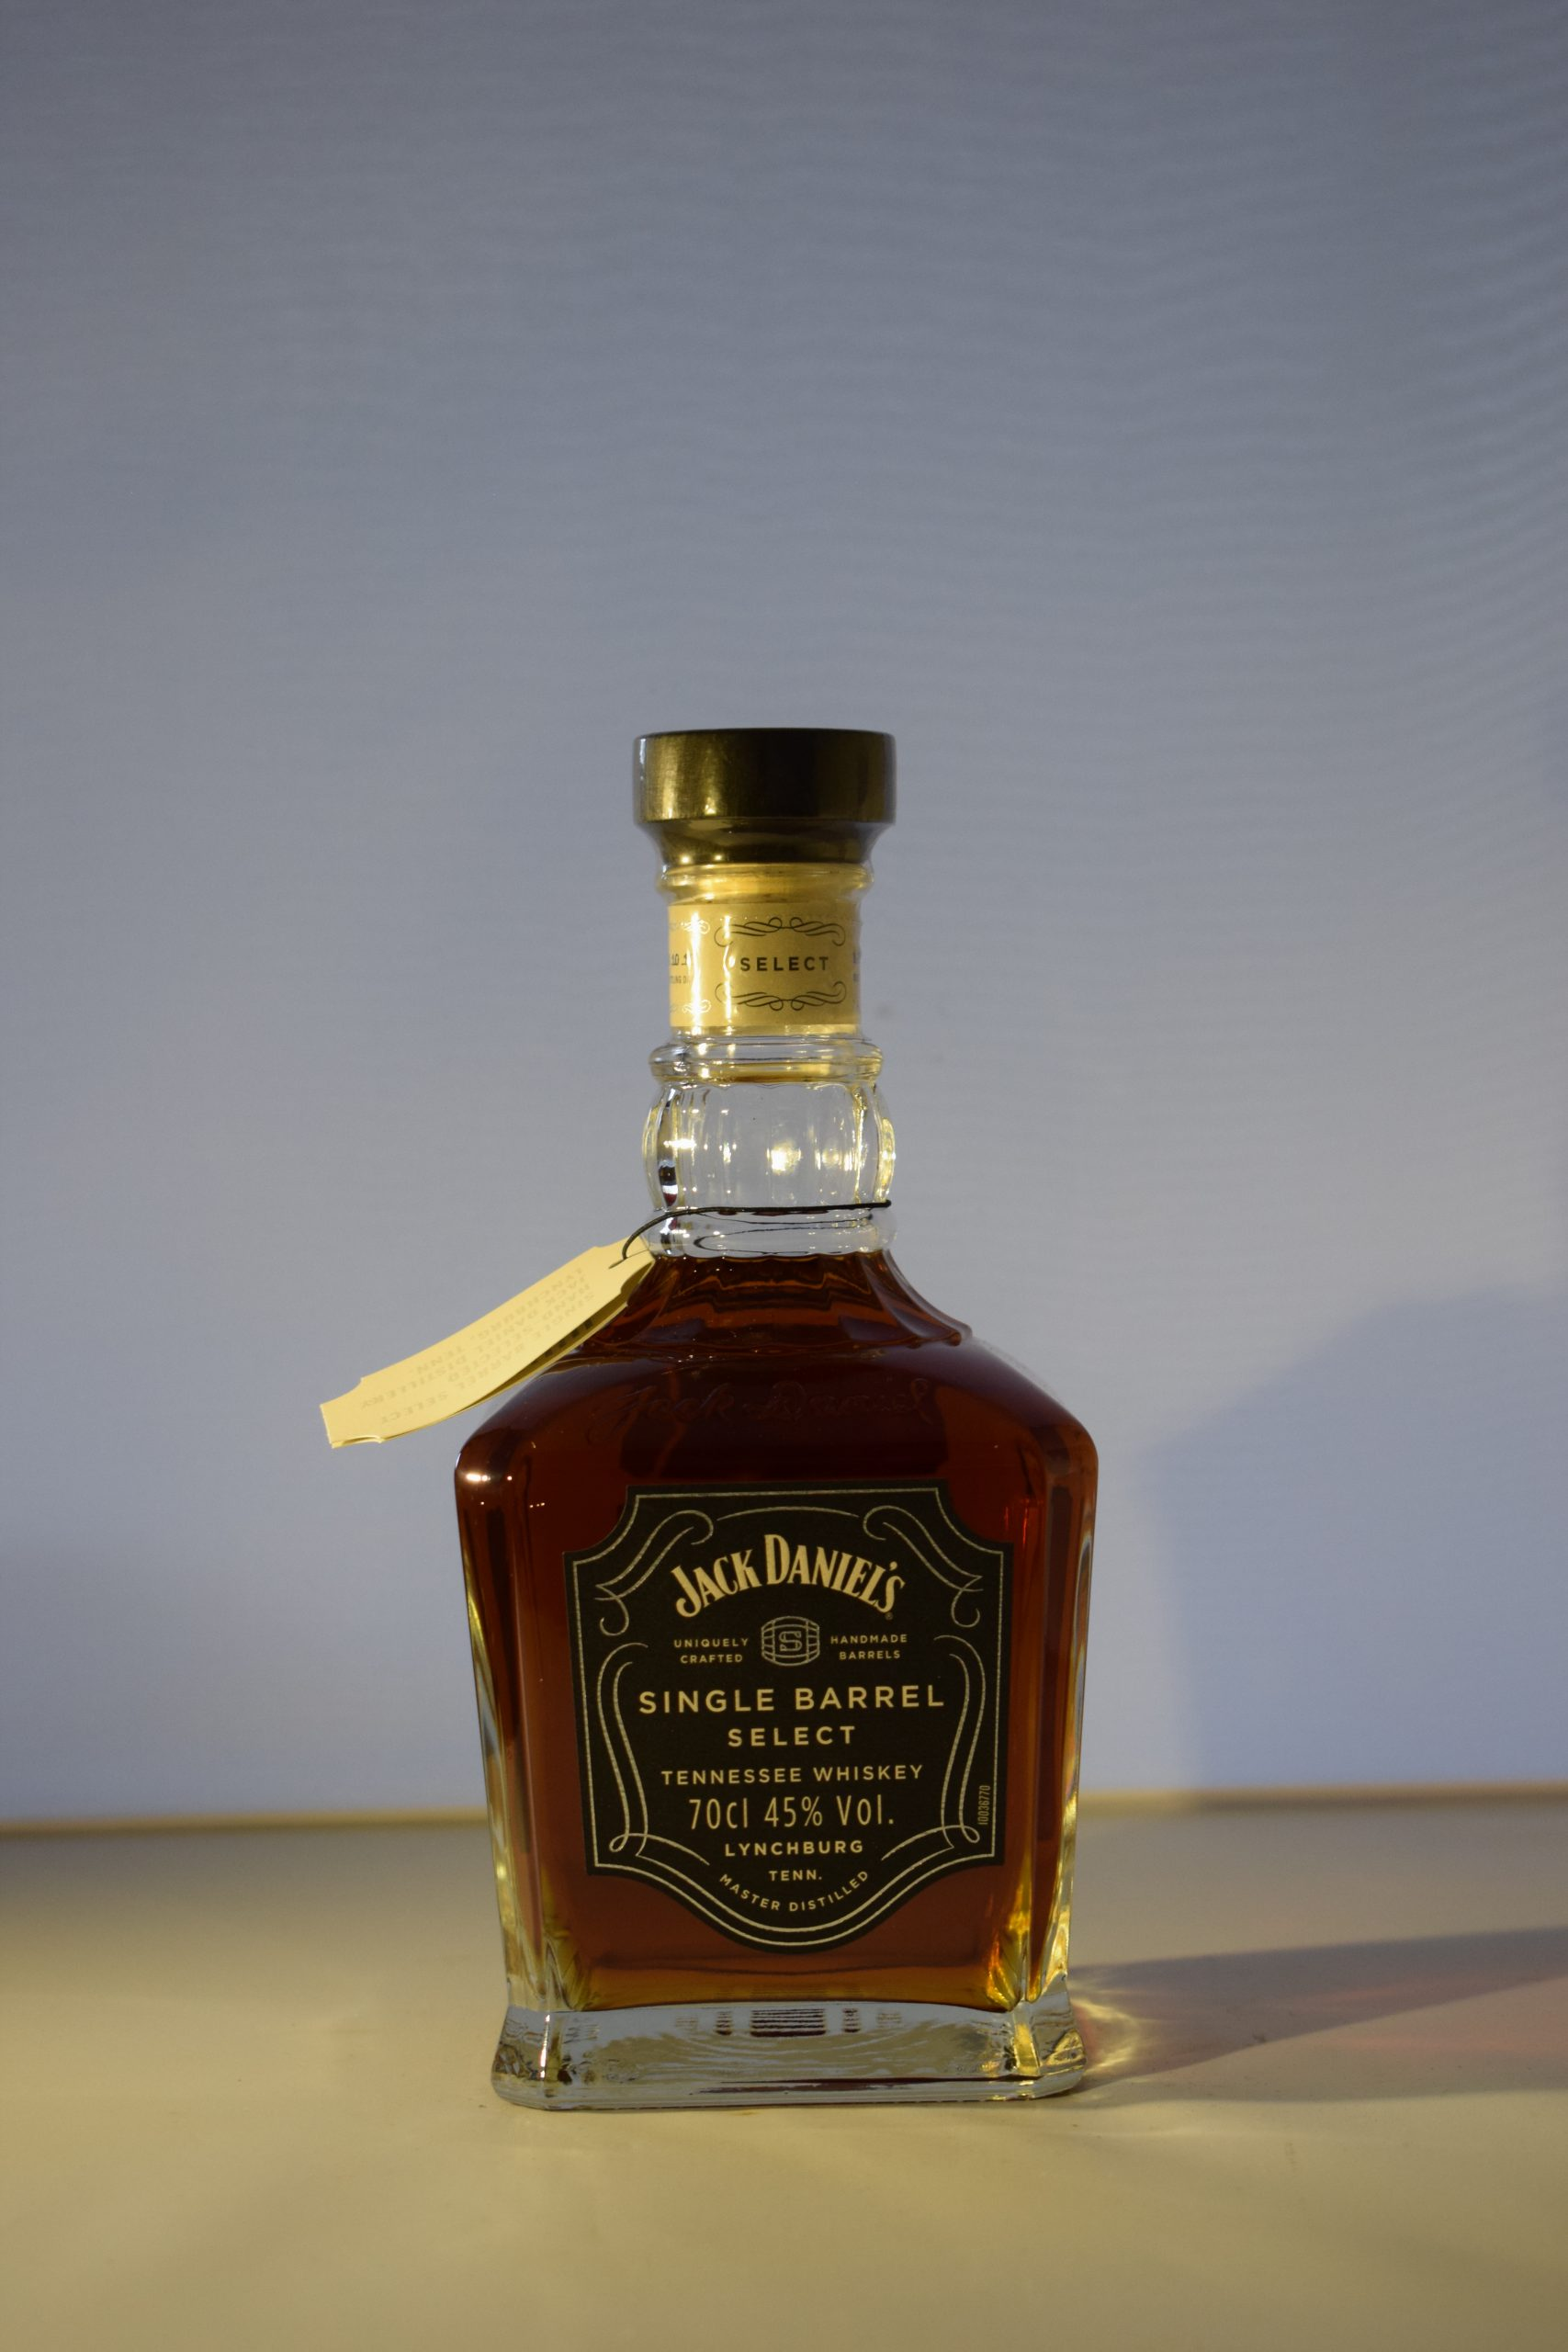 Jack Daniels Single Barrel Select Tennessee Whiskey 70 CL